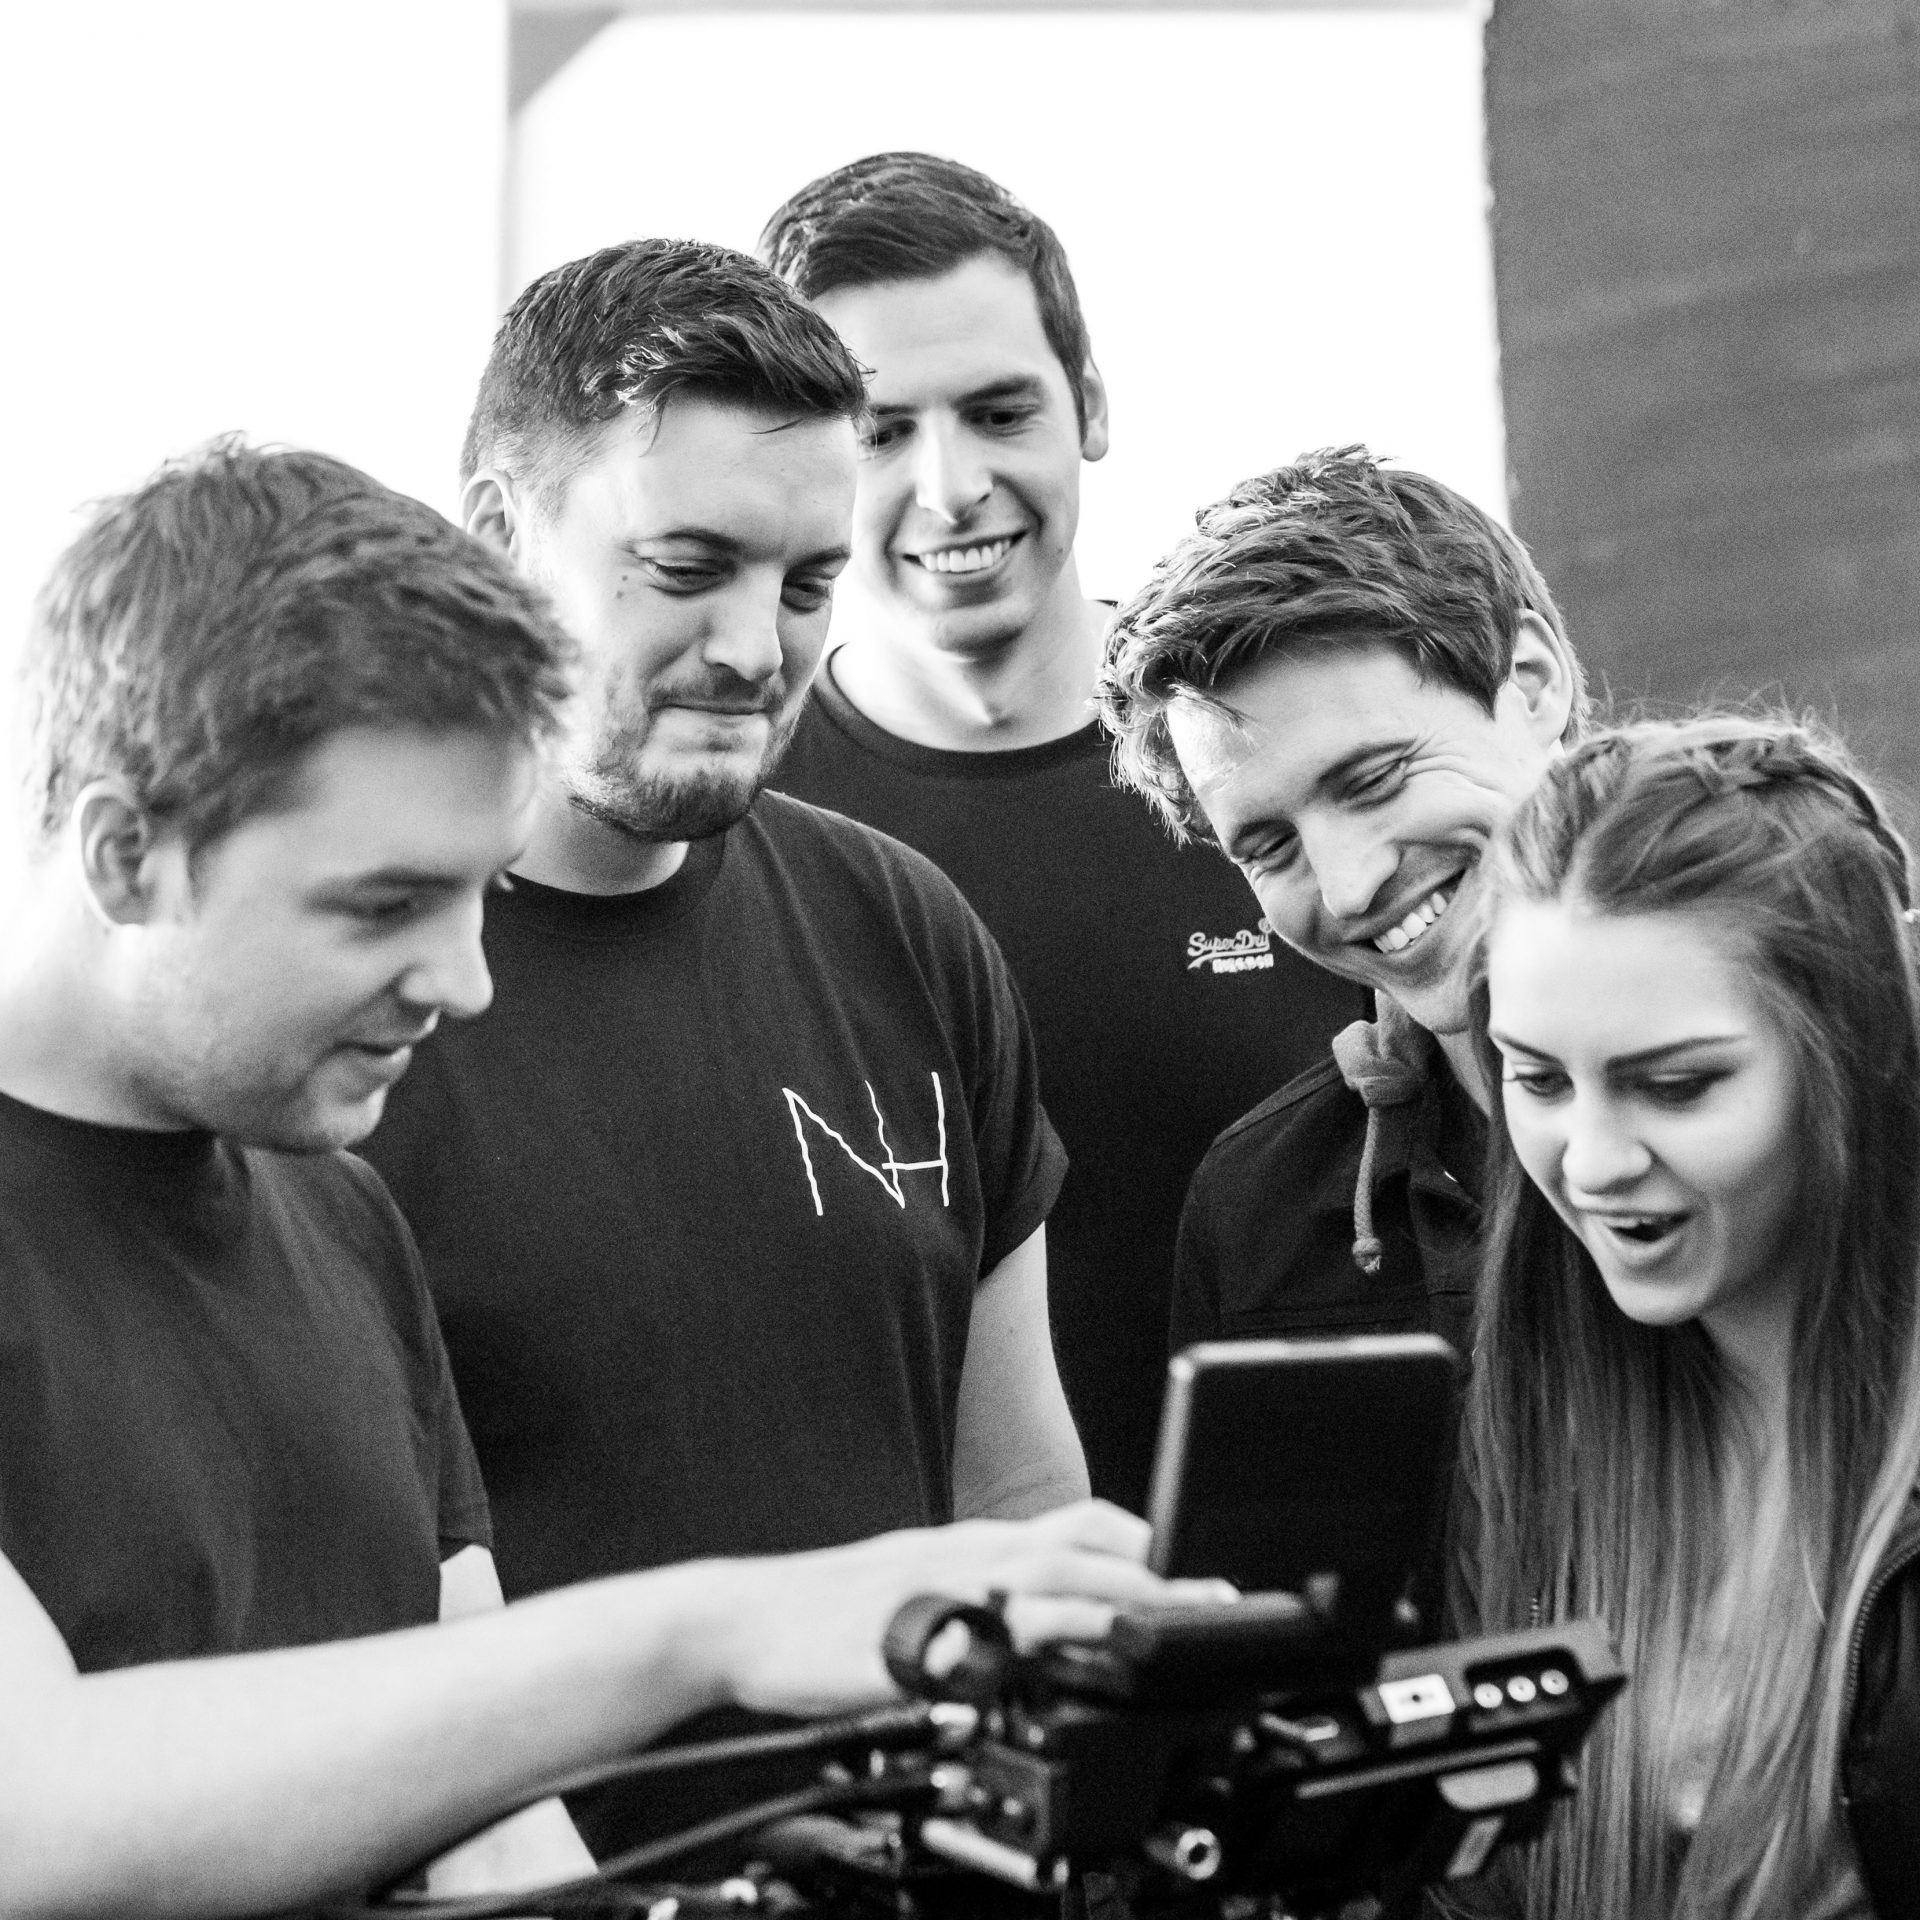 Creative Director Tom and the band watch through one of the takes during filming